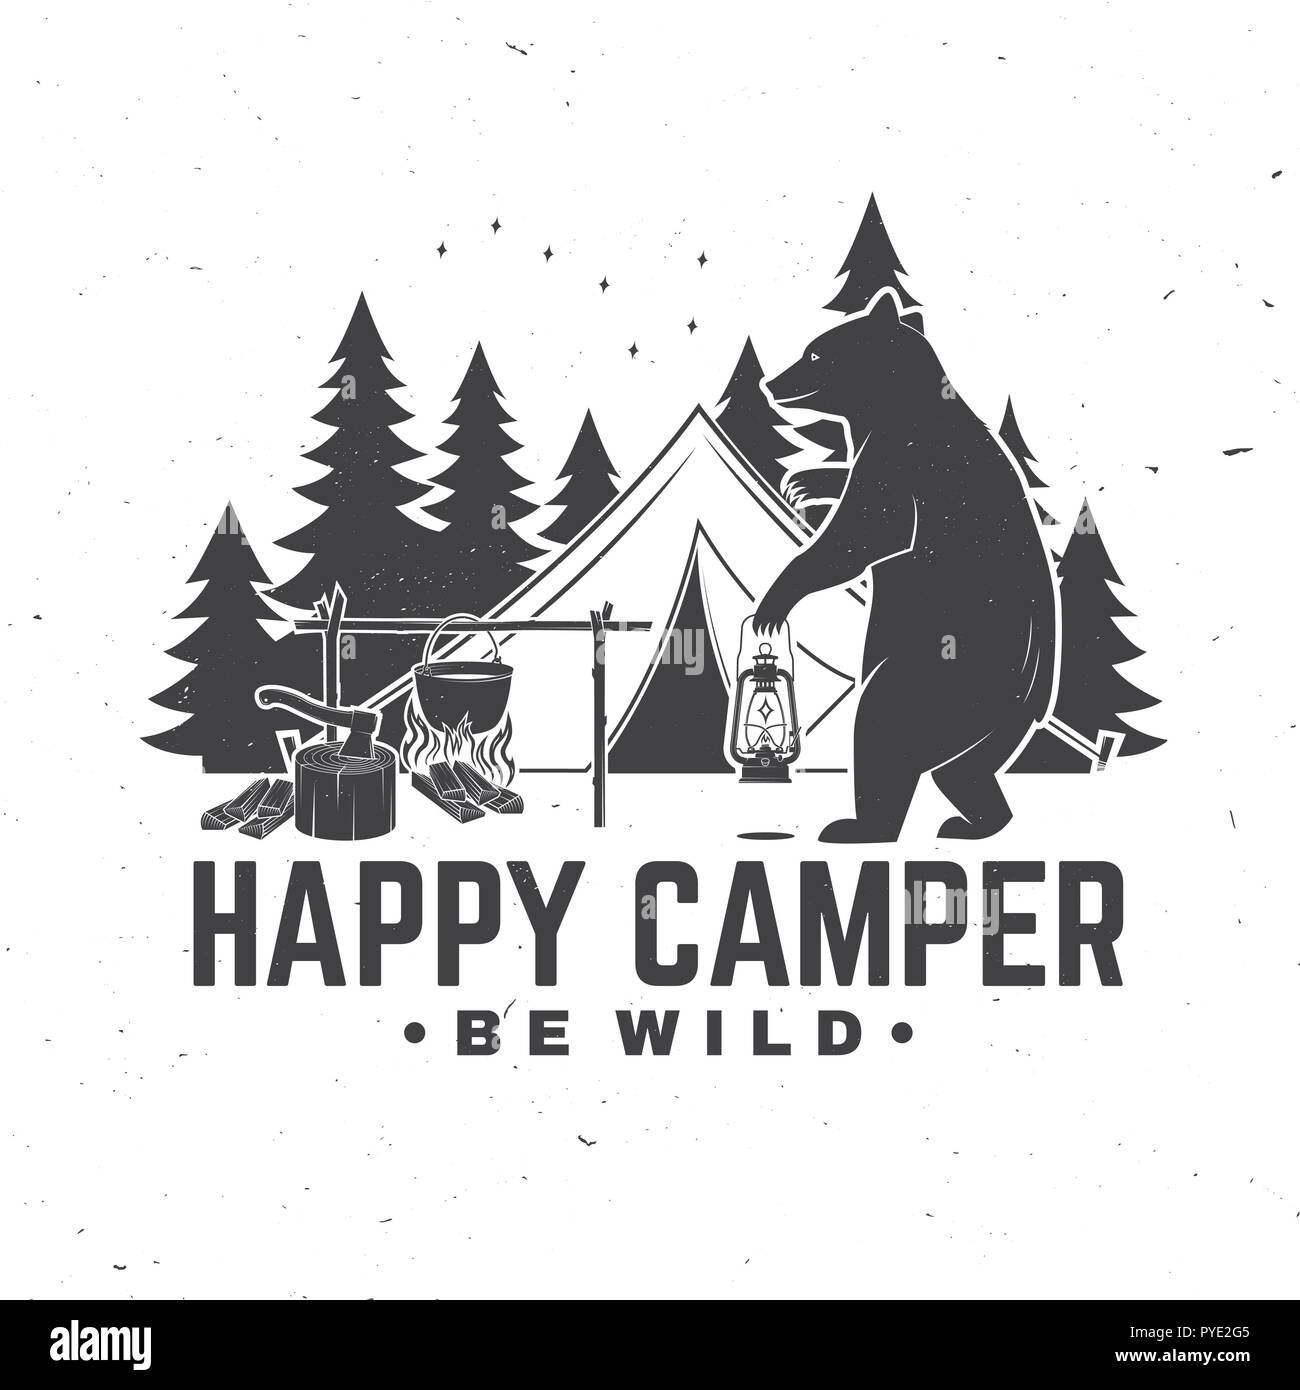 Happy camper. Be wild. Vector illustration. Concept for shirt or logo, print, stamp or tee. Vintage typography design with camping tent, bear with lantern, campfire and forest silhouette. - Stock Image